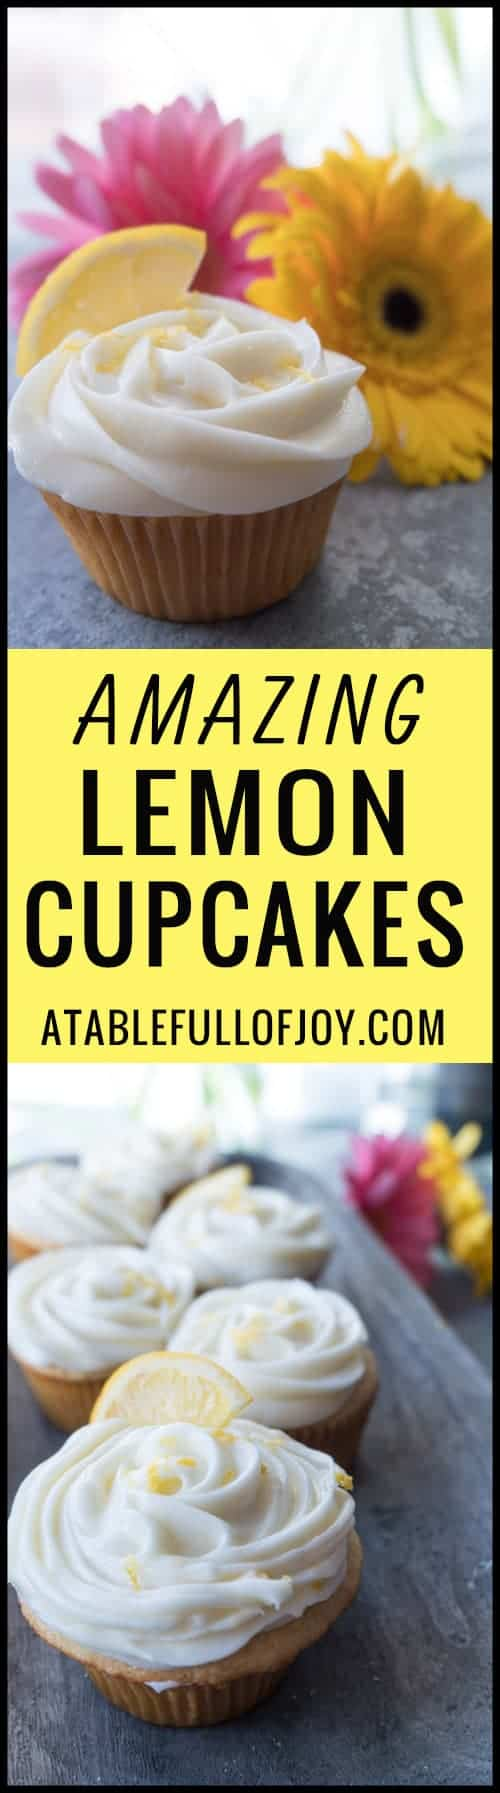 Lemon Cupcake with Lemon Cream Cheese Frosting